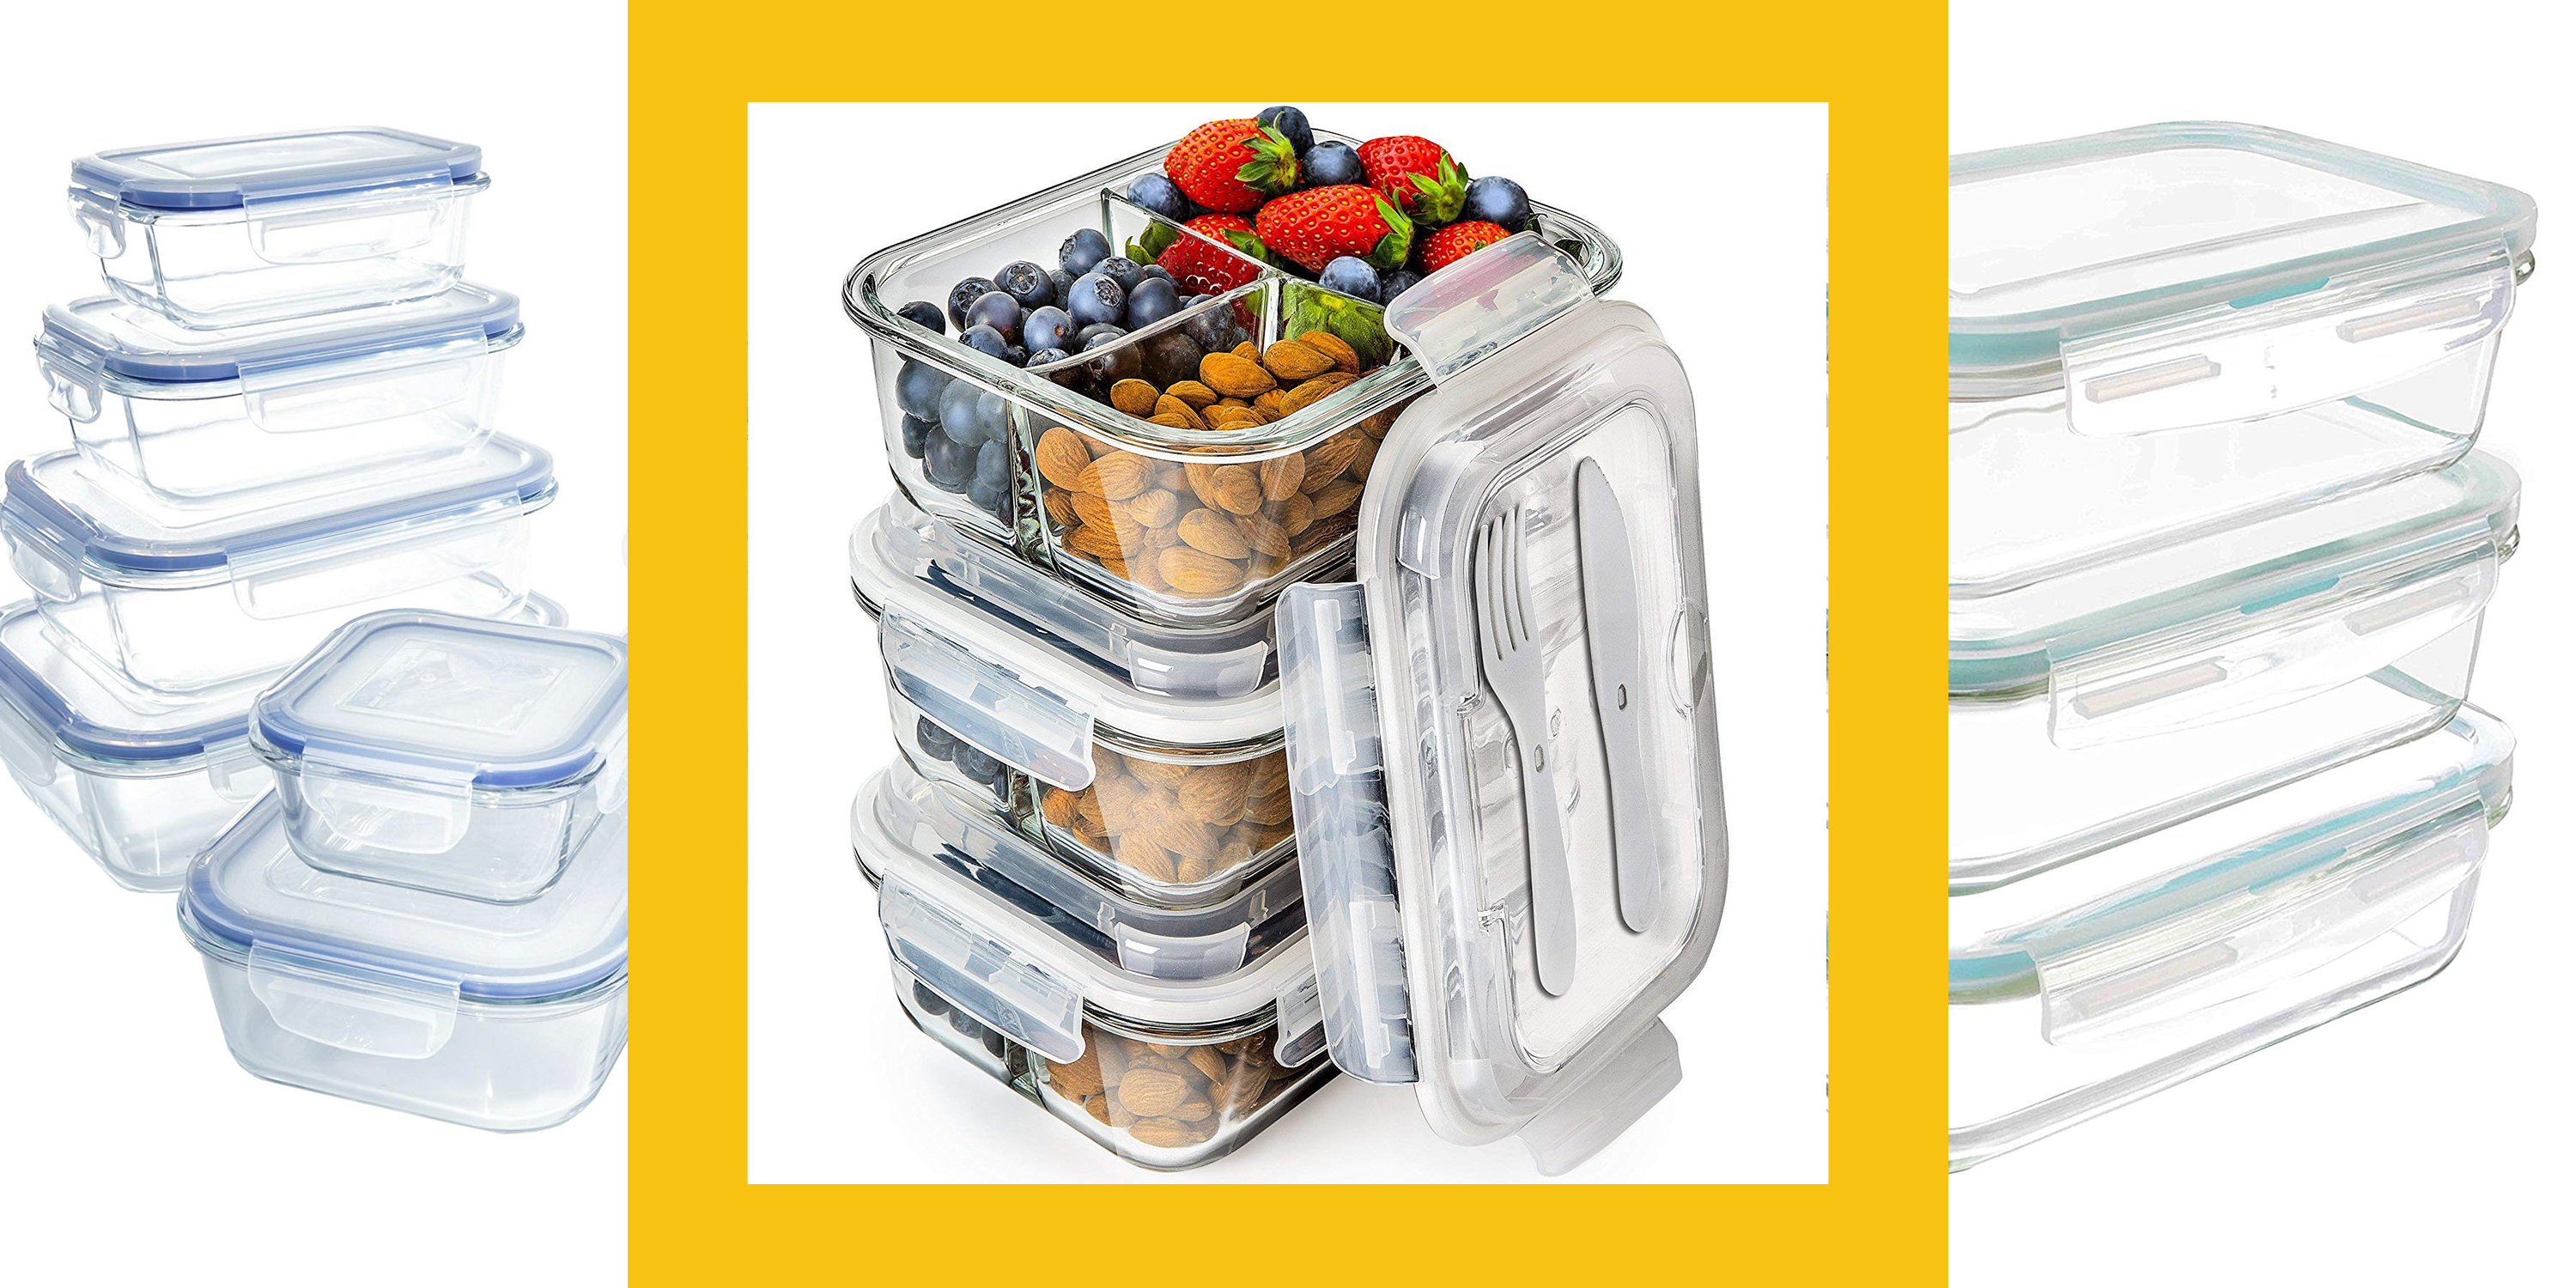 The Best Meal Prep Containers for Food Storage, According to a Registered Dietitian